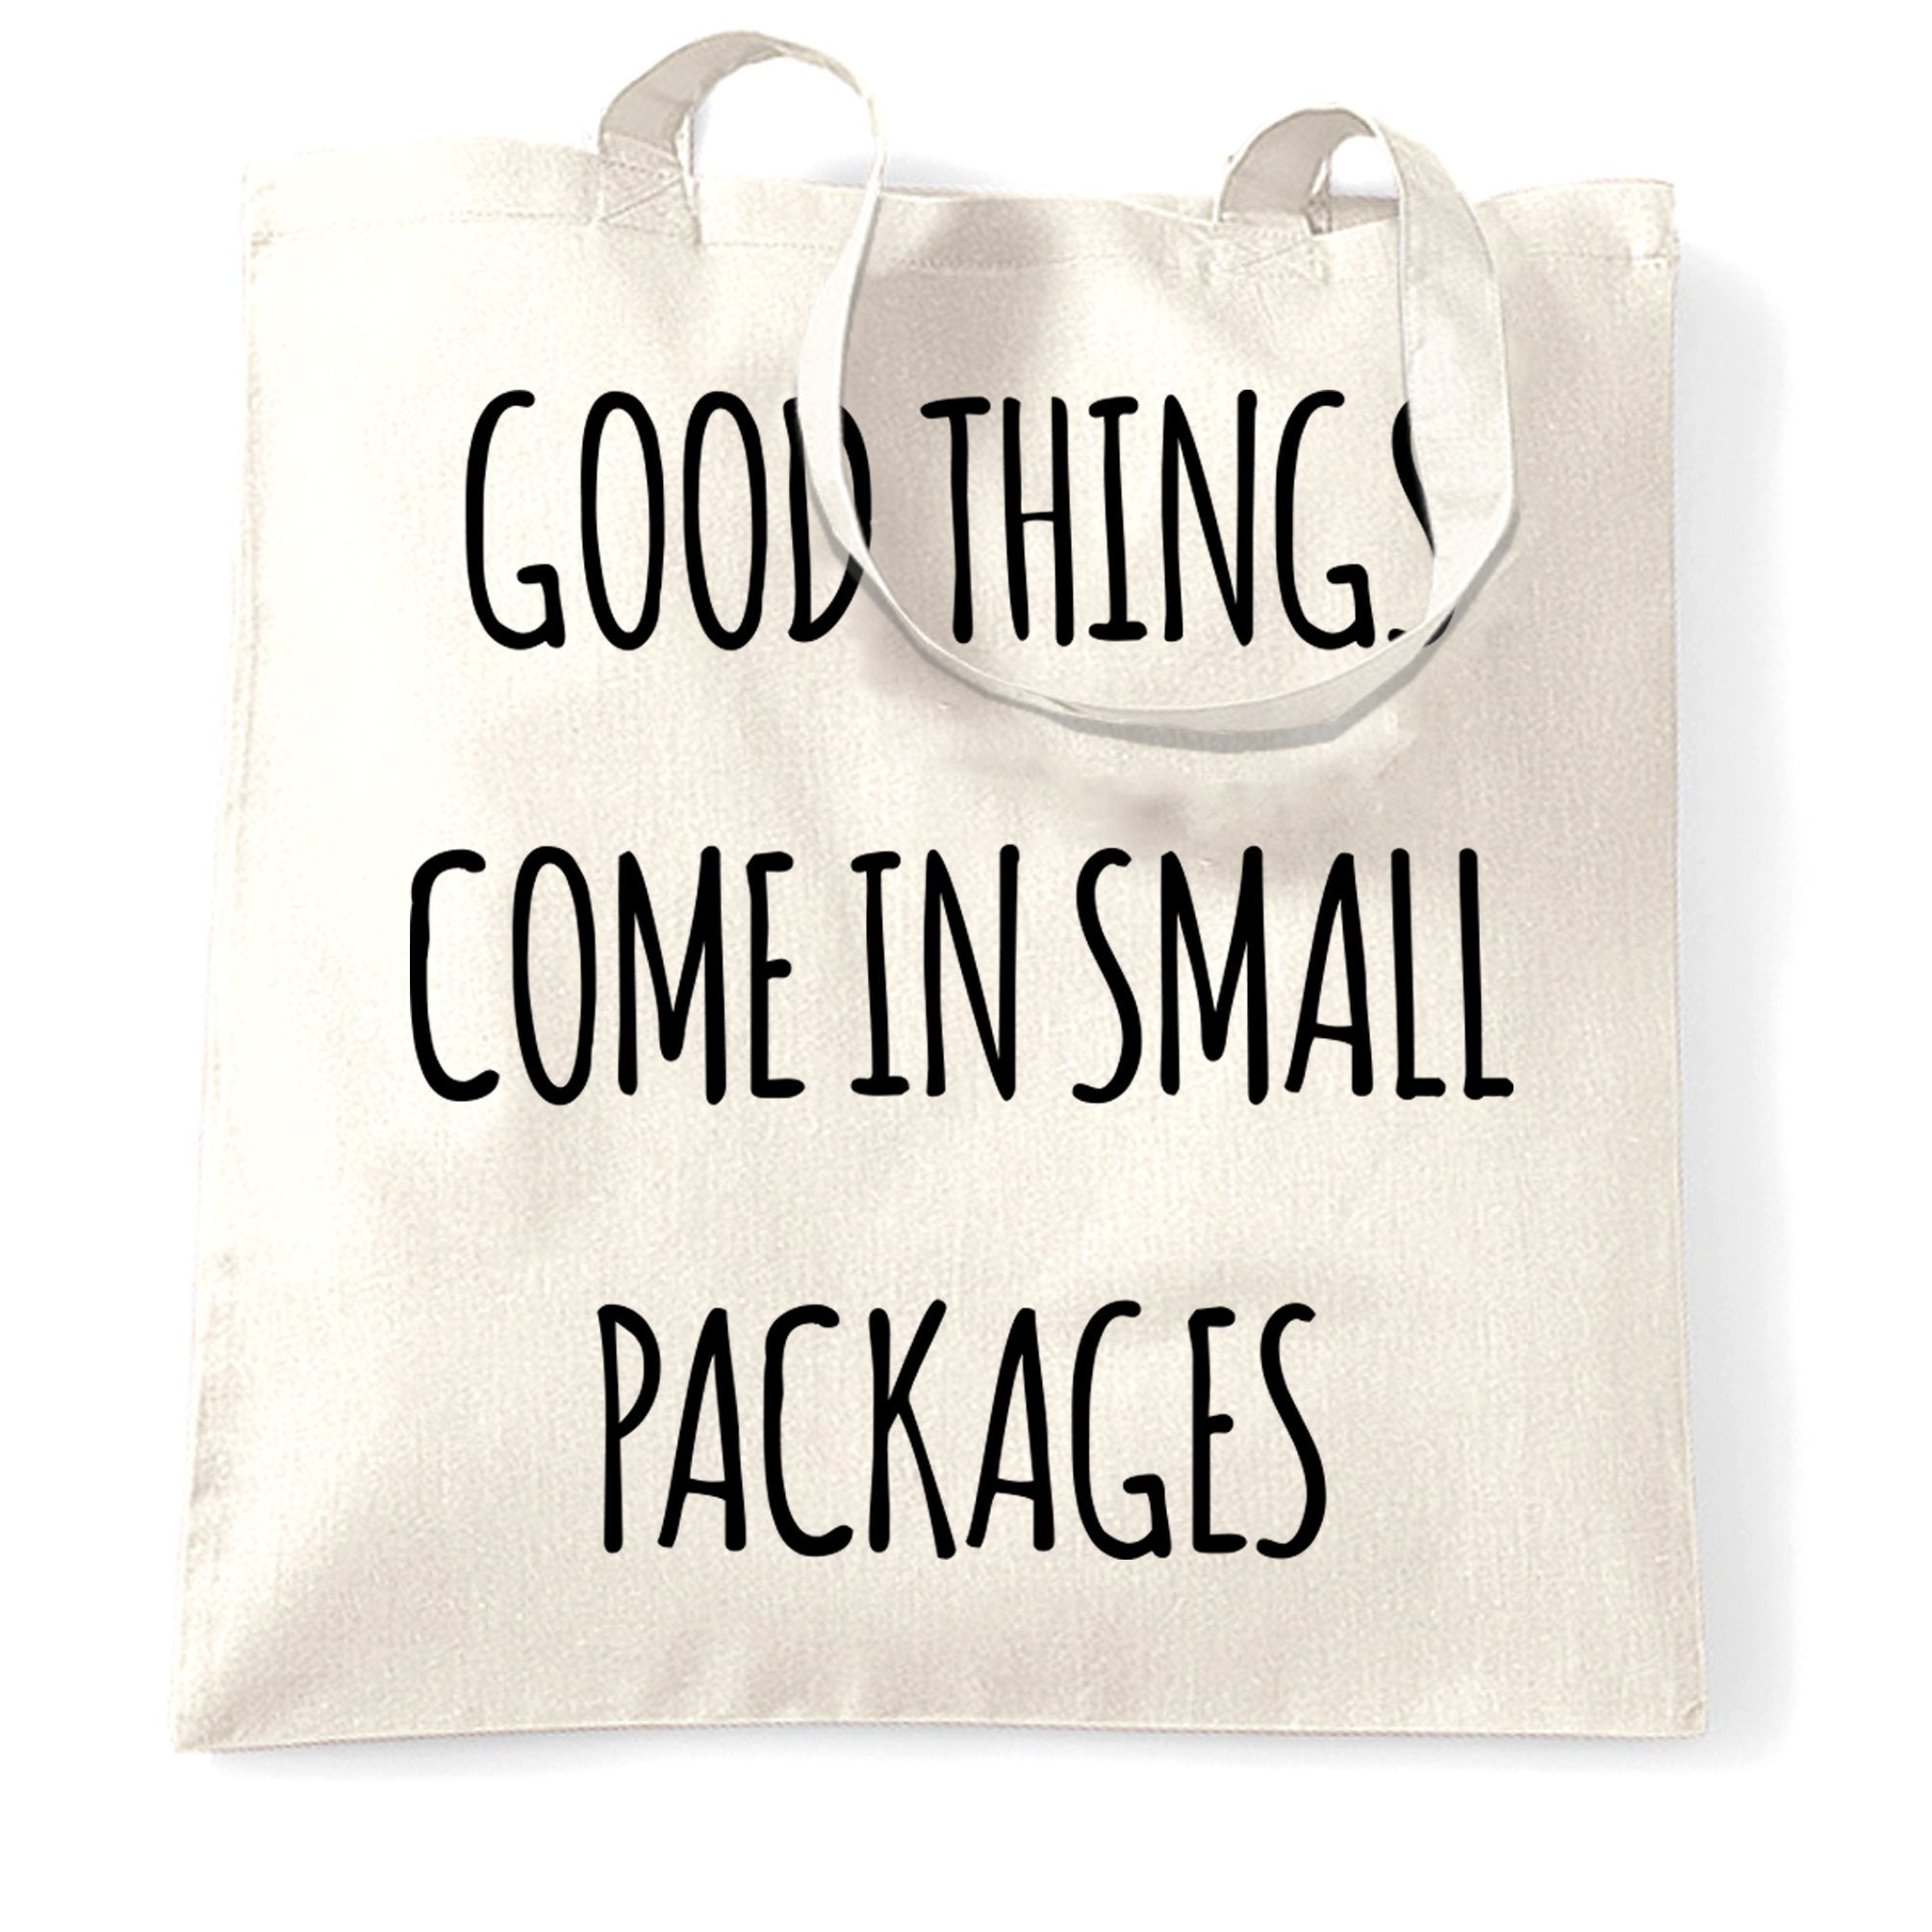 Height Joke Tote Bag Good Things Come In Small Packages